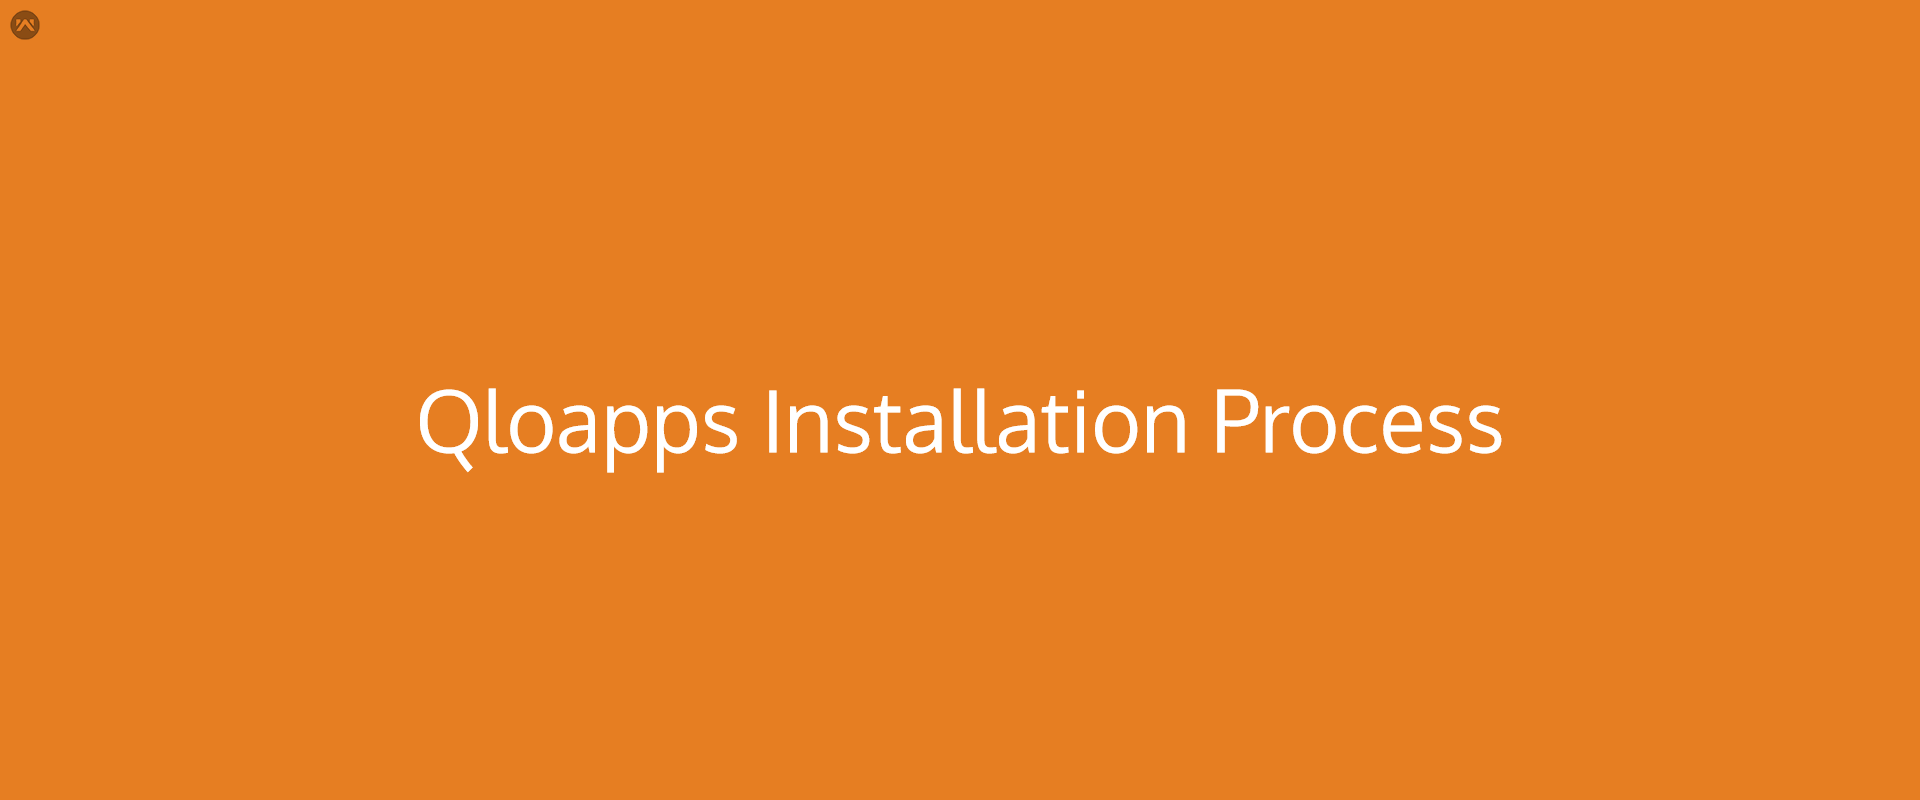 Qloapps Installation Process